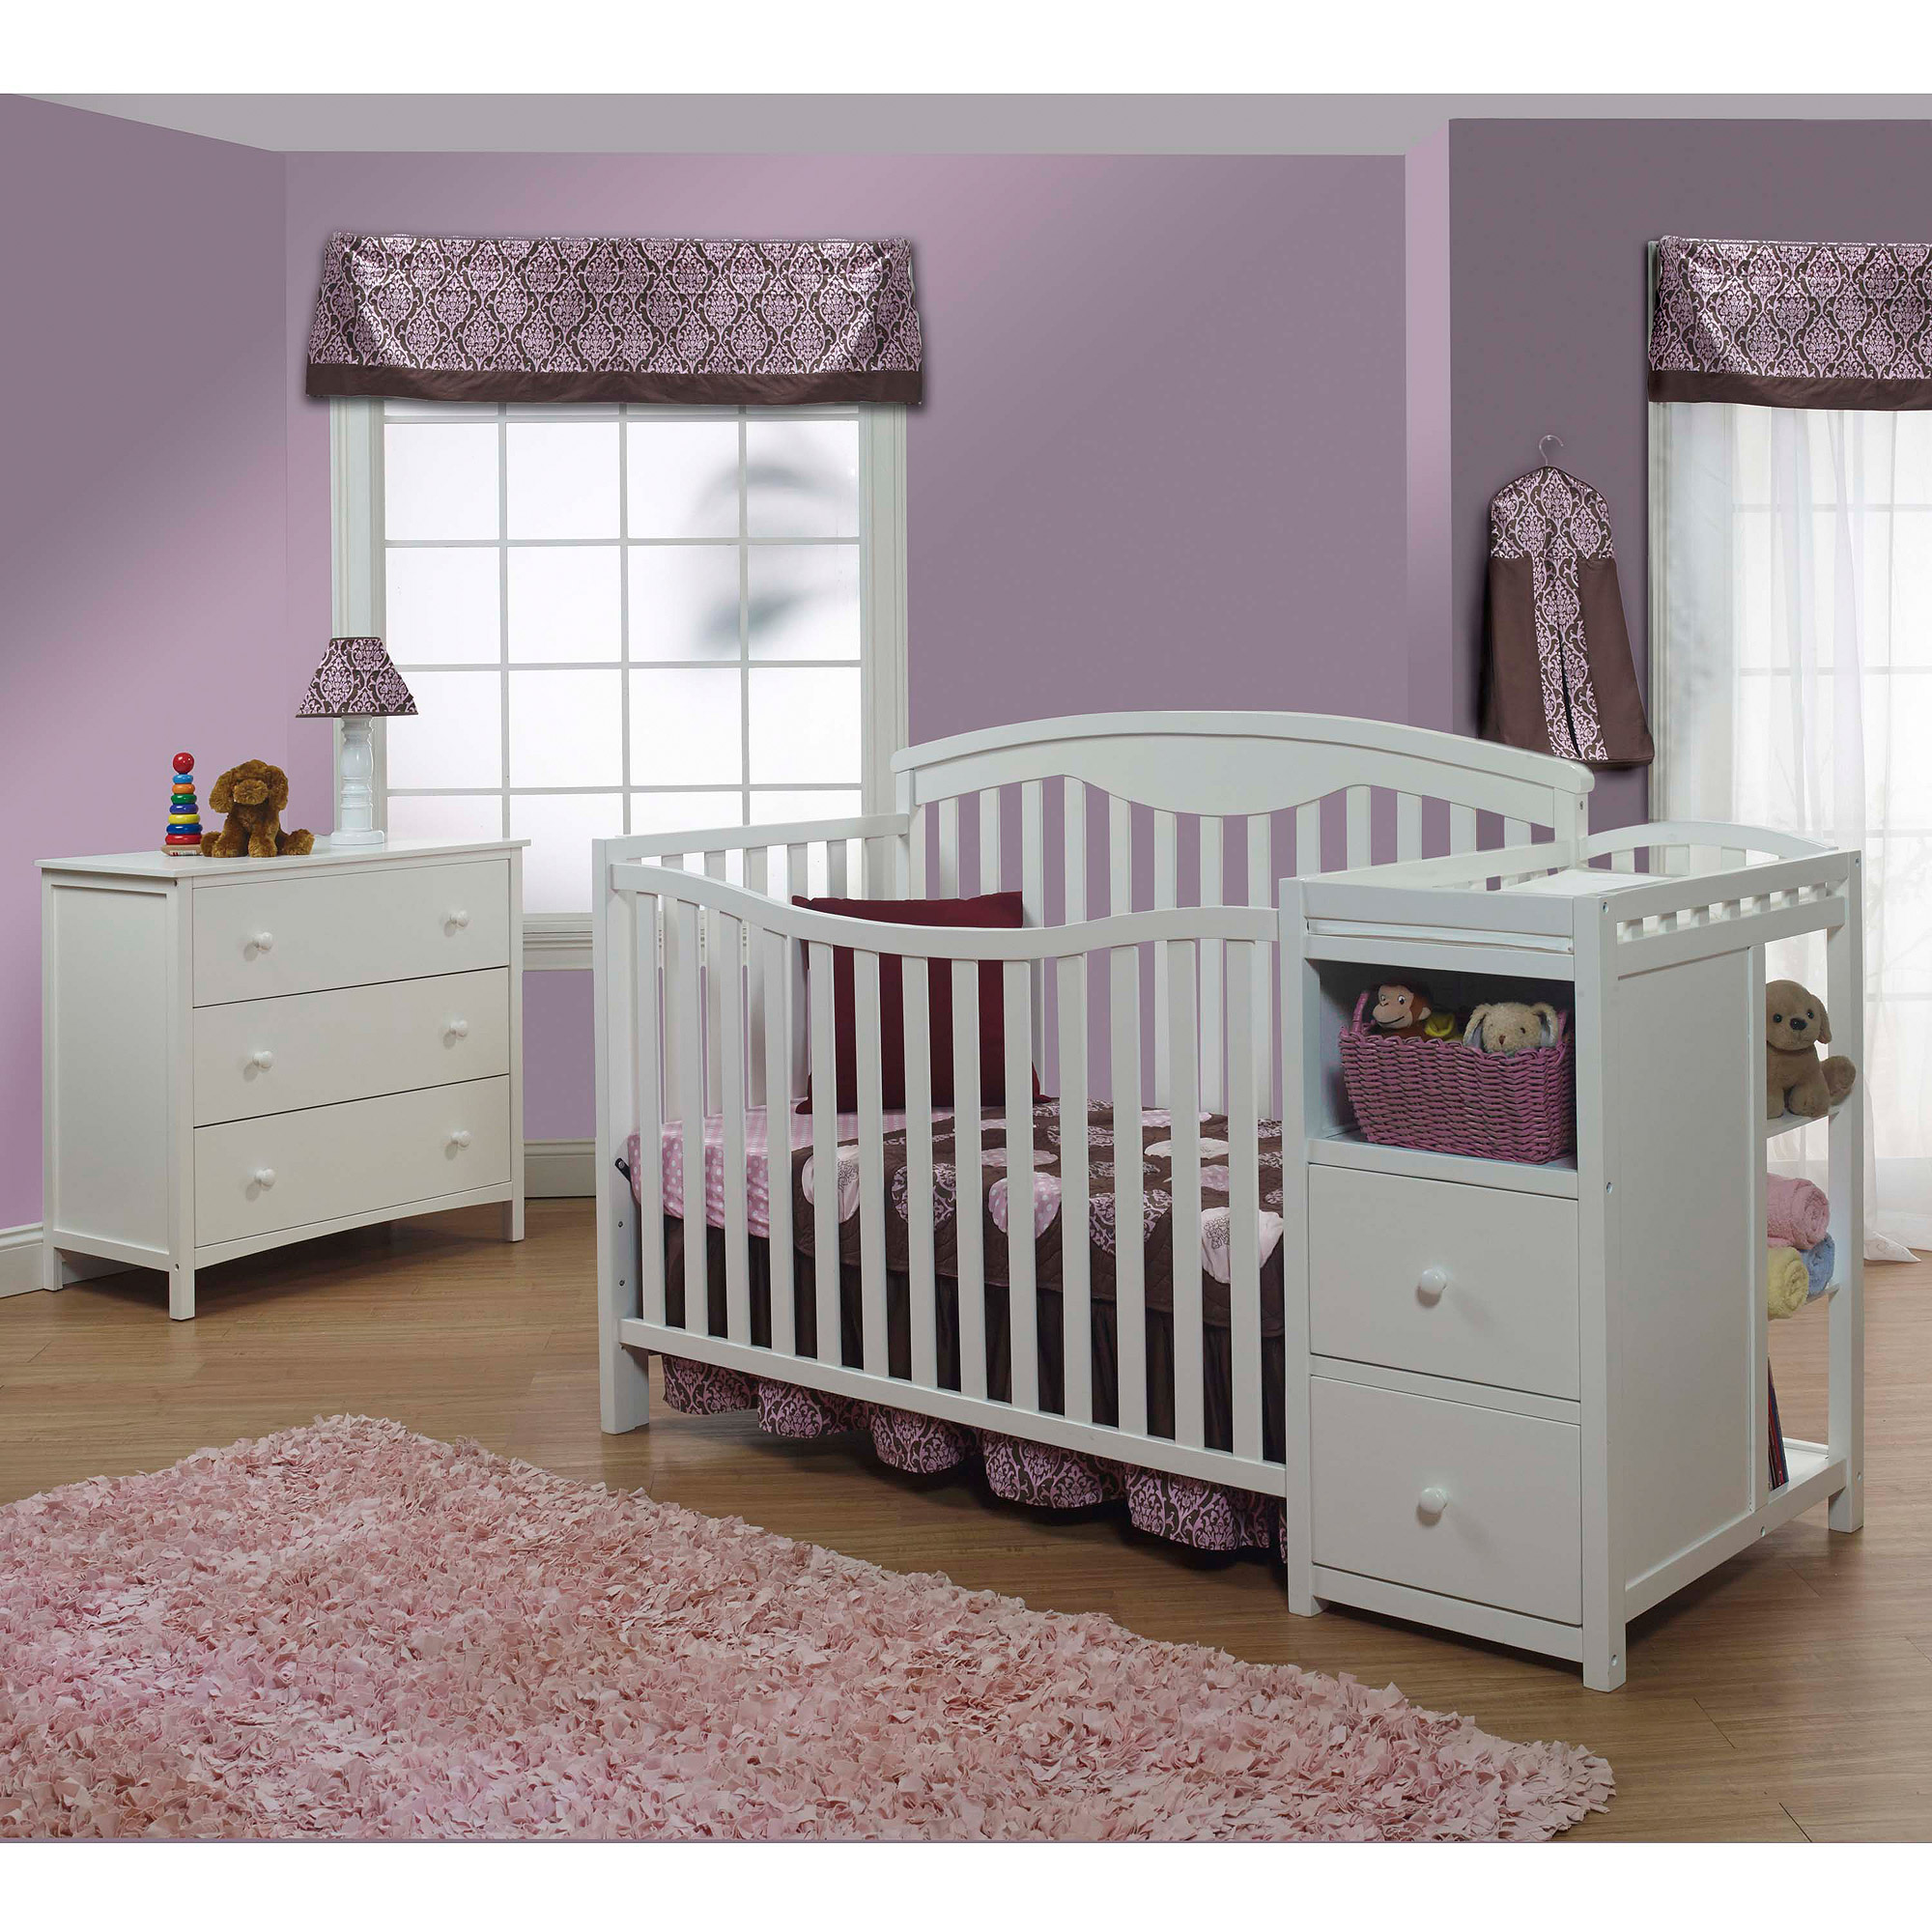 Sorelle Presley 4-in-1 Fixed-Side Lifetime Convertible Crib and Changer